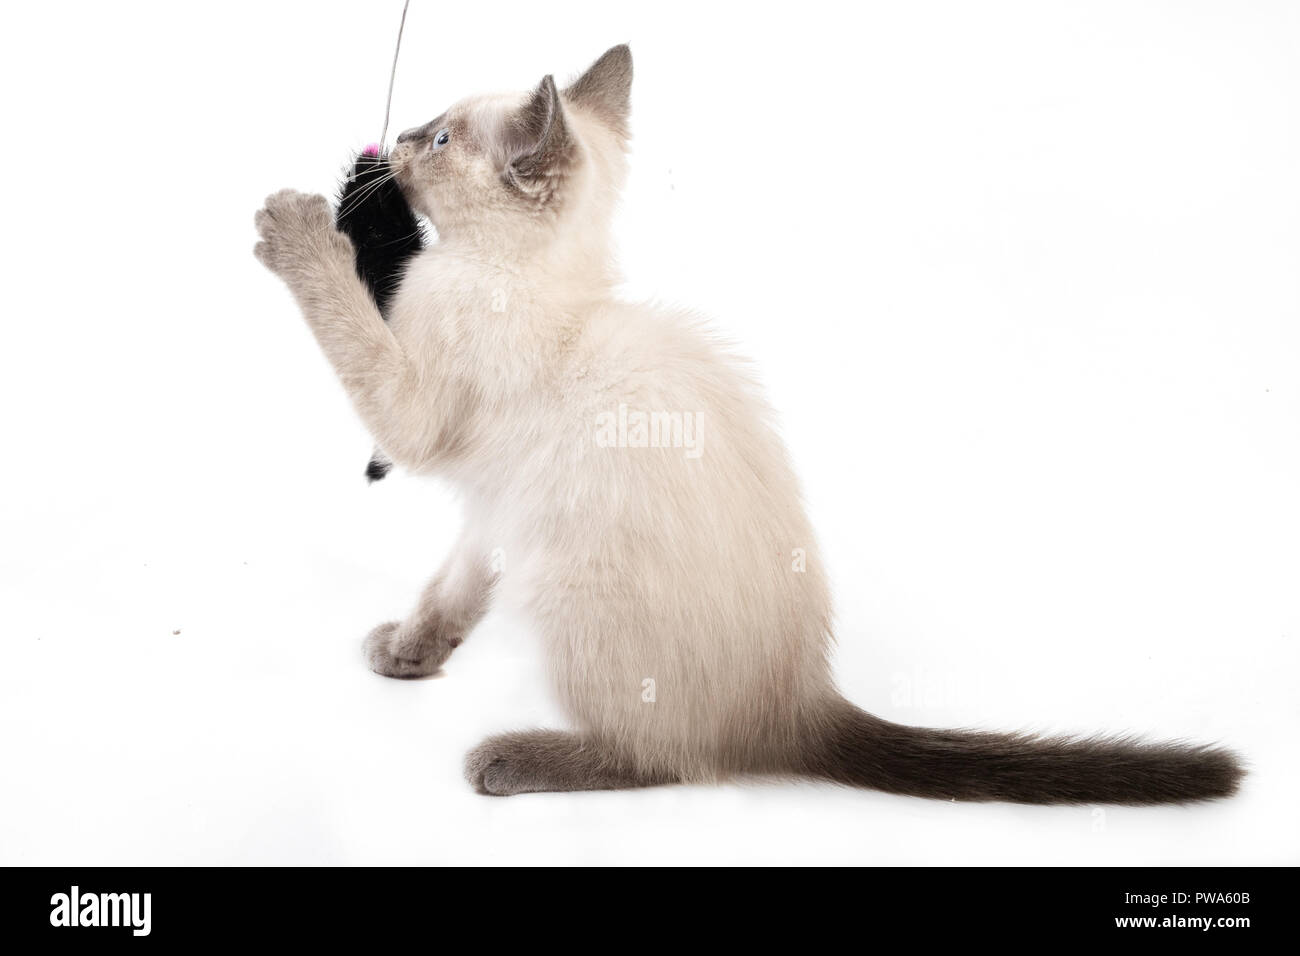 The kitten of a color of color-point catches a toy. The light kitten catches a black toy mouse on a string - Stock Image